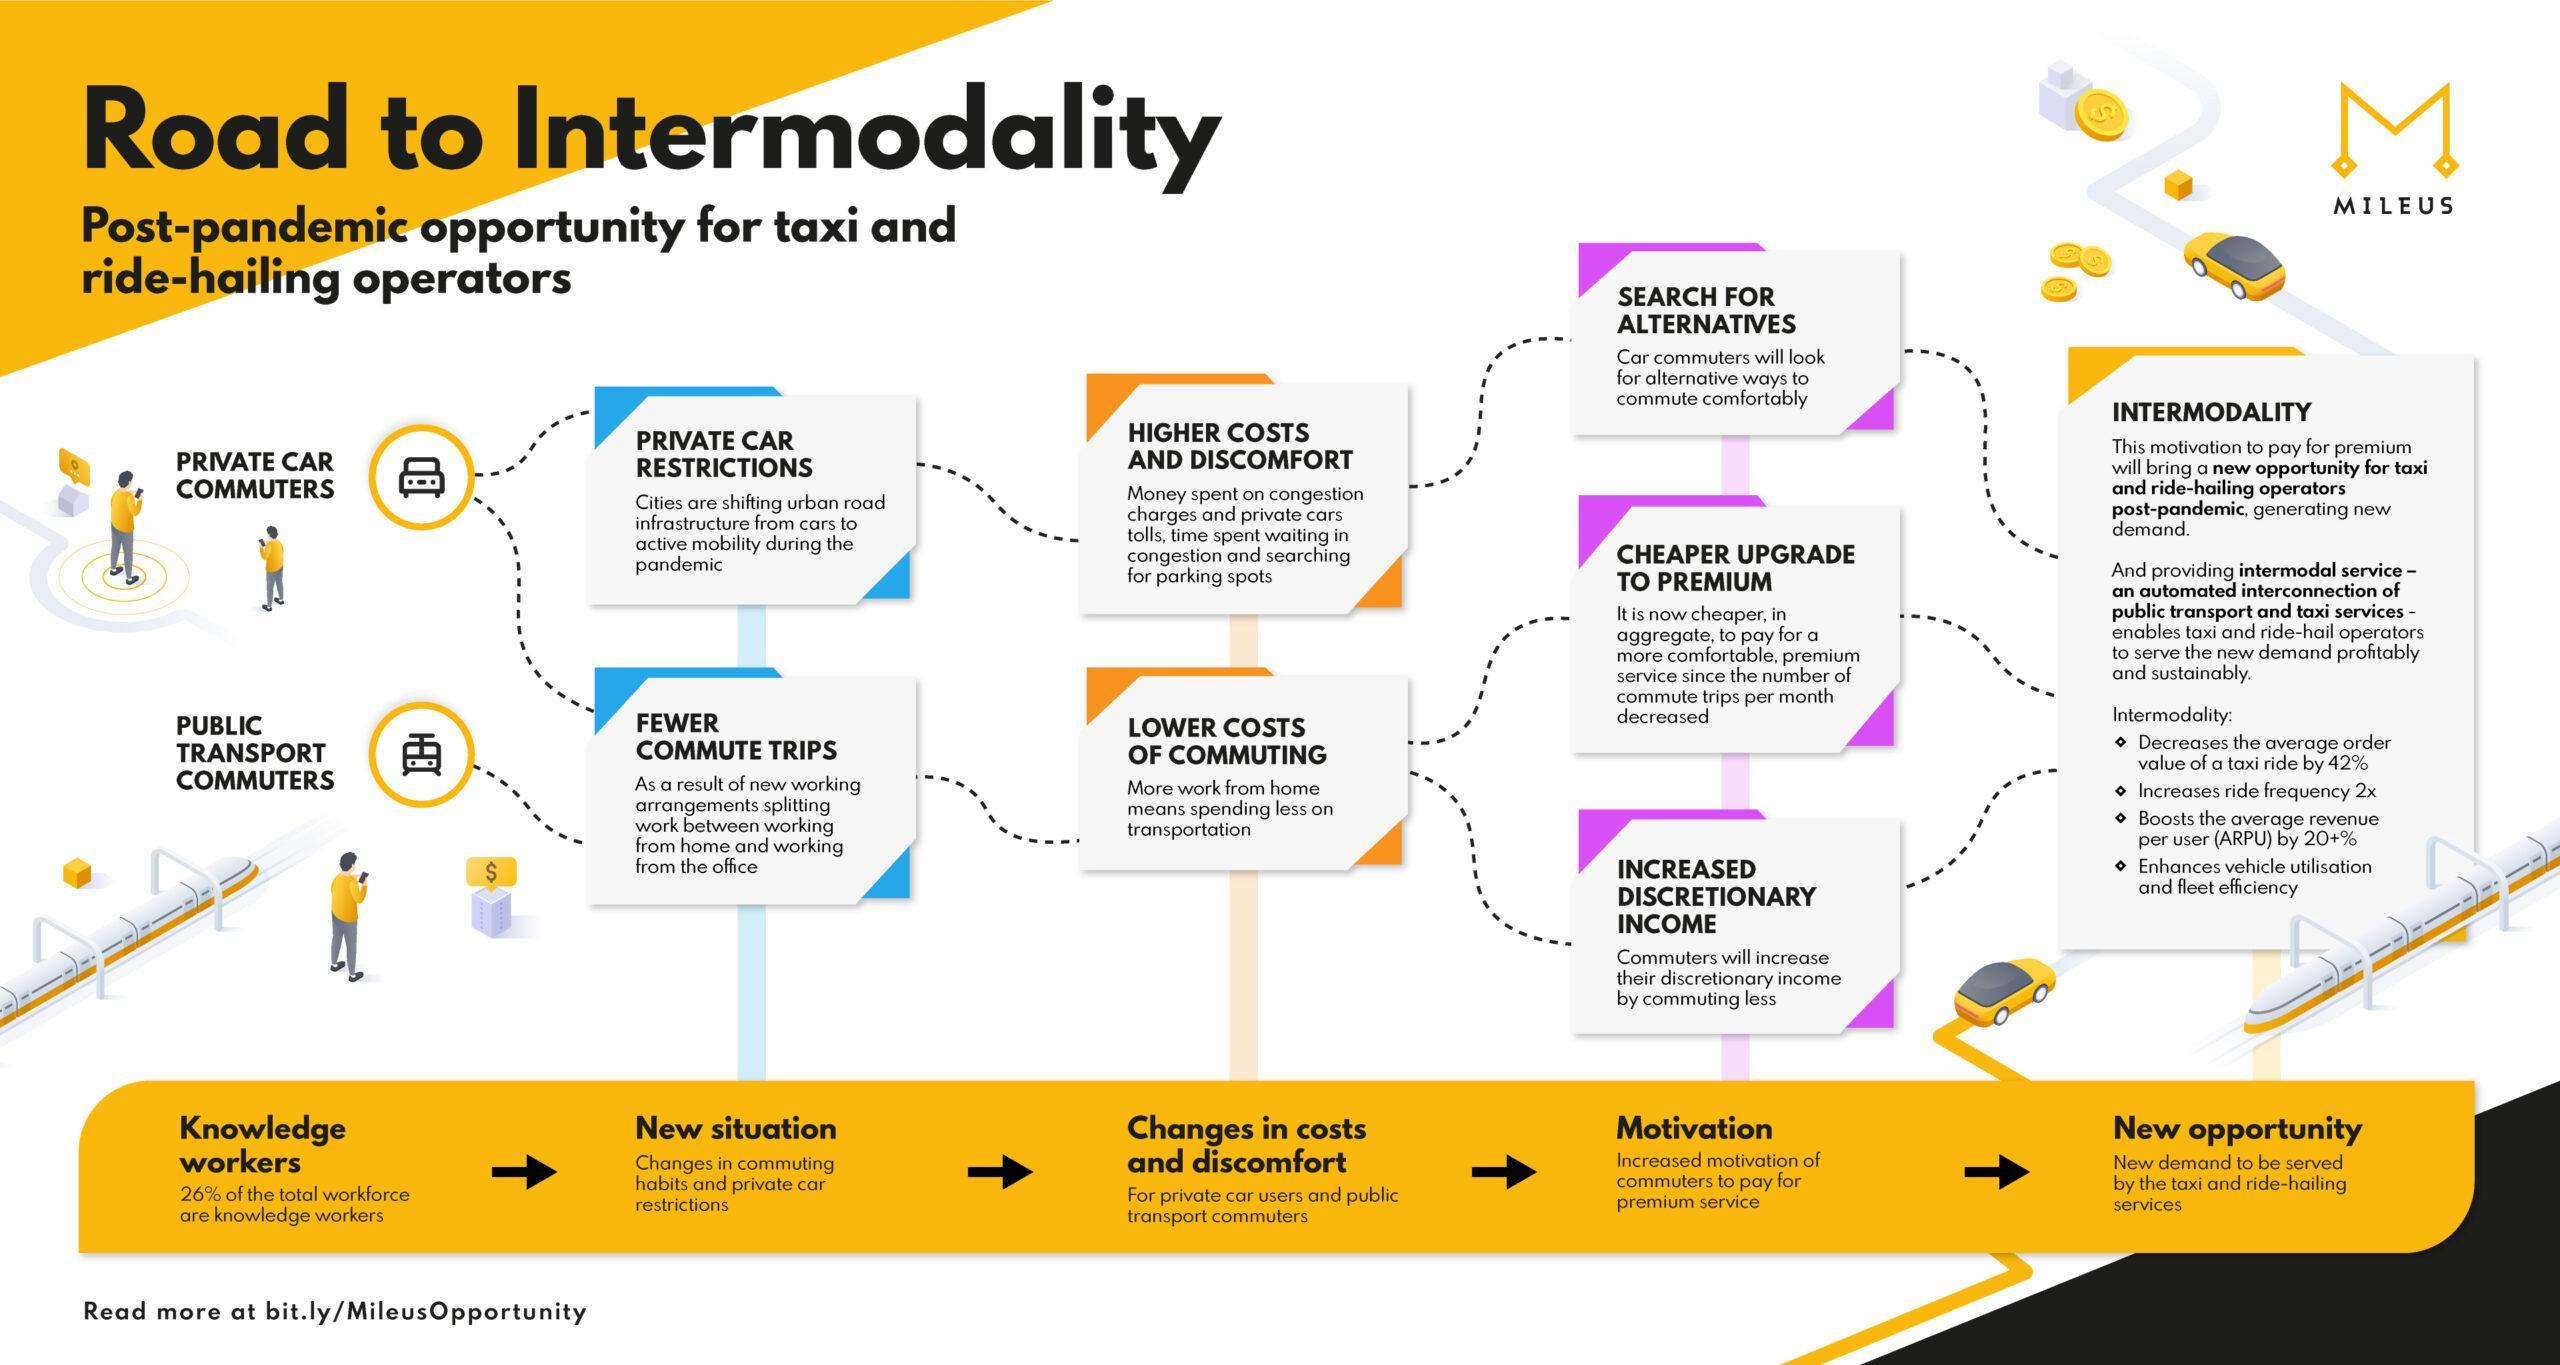 Road to Intermodality